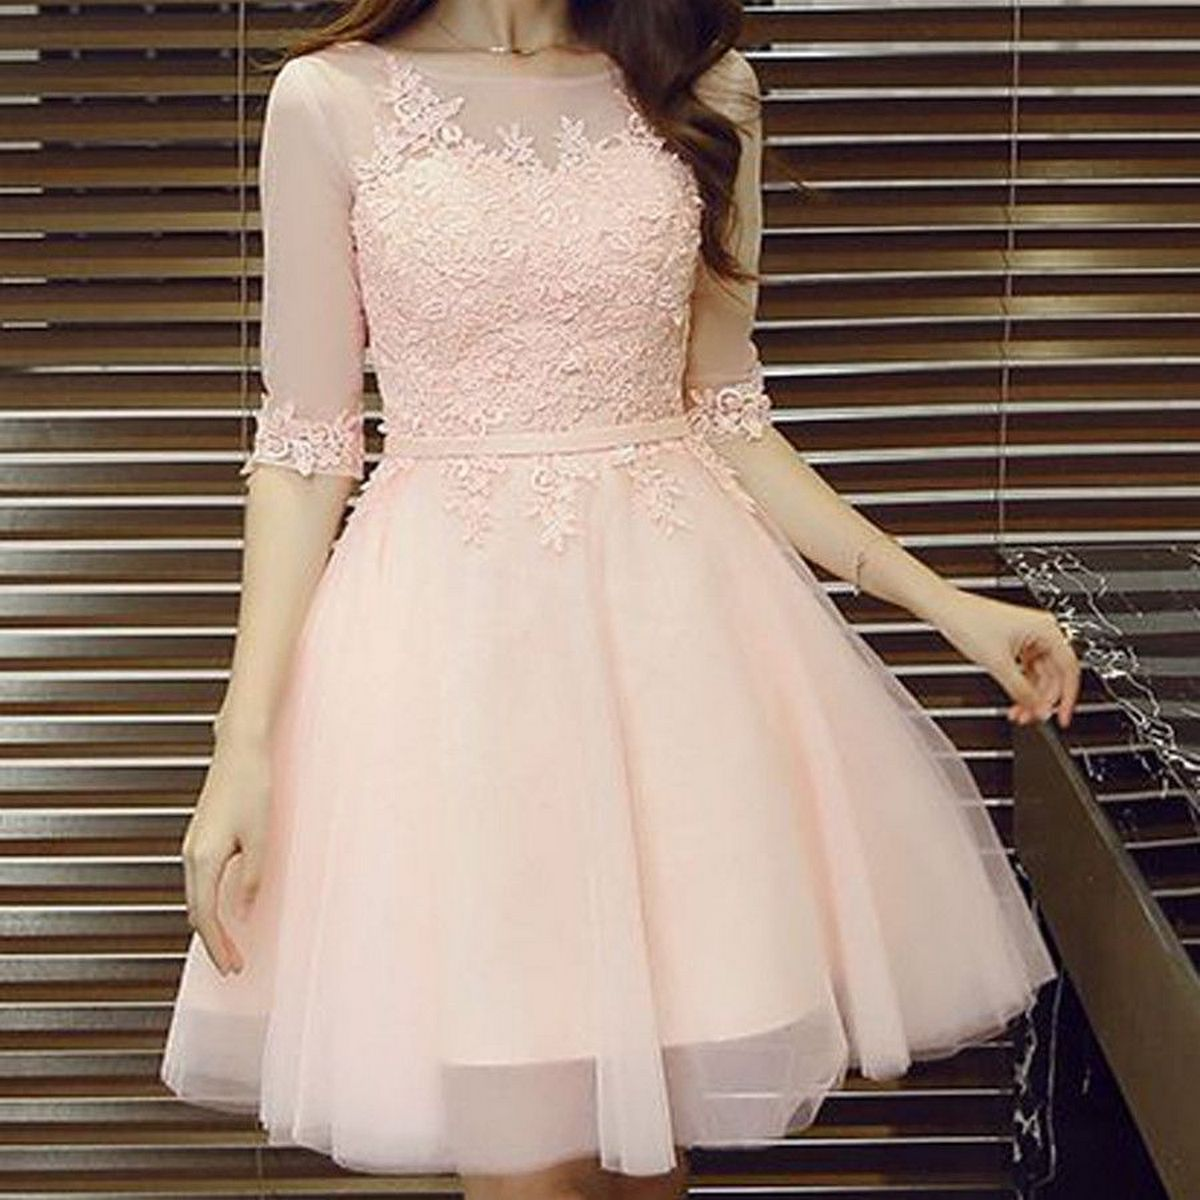 Pink sleeve dress idea for daily action 54 fashion